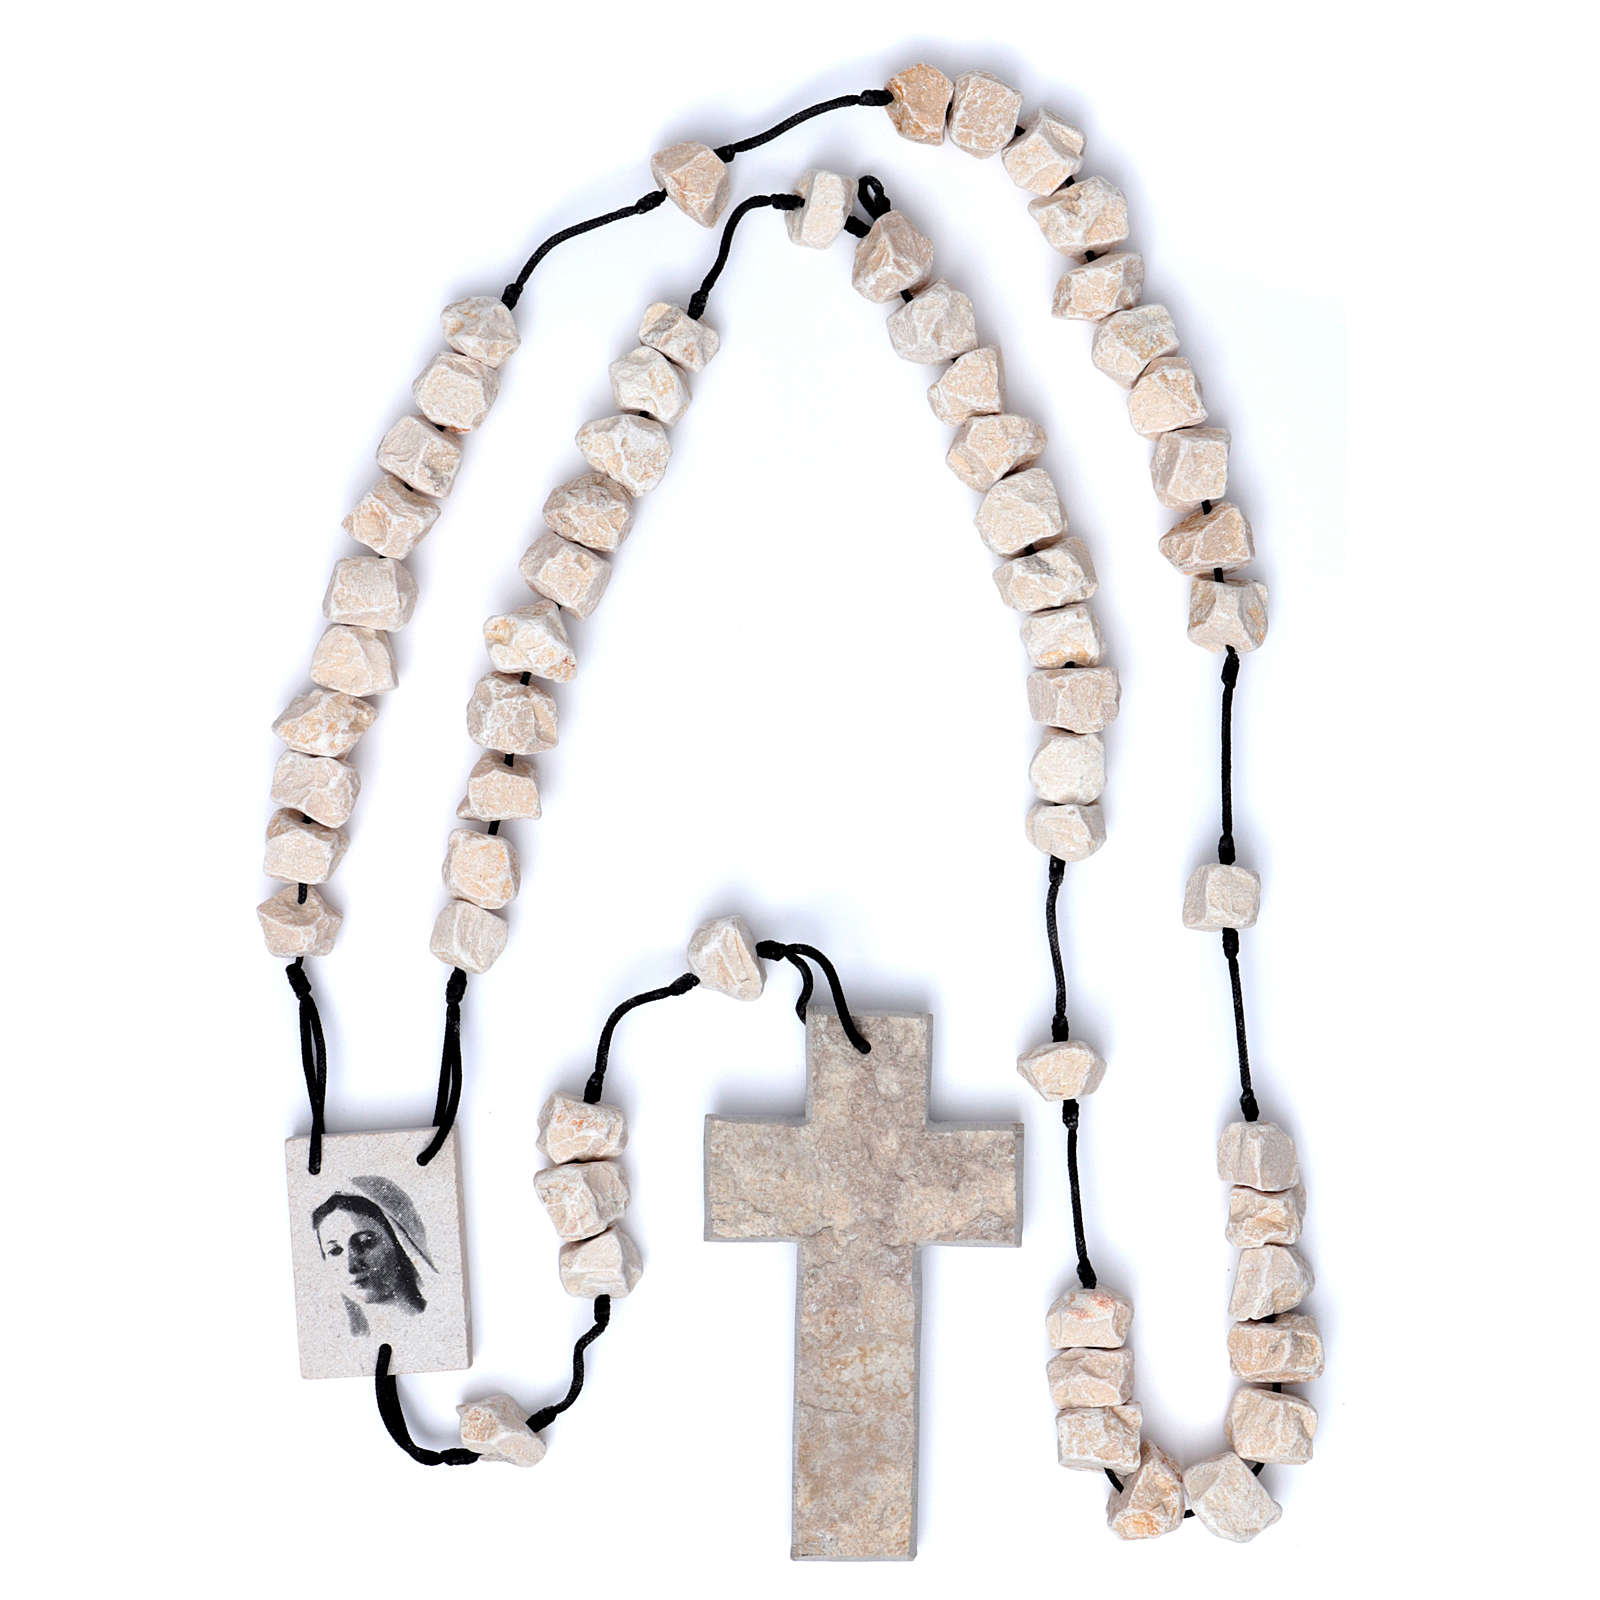 Medjugorje wall rosary in stone and rope 4